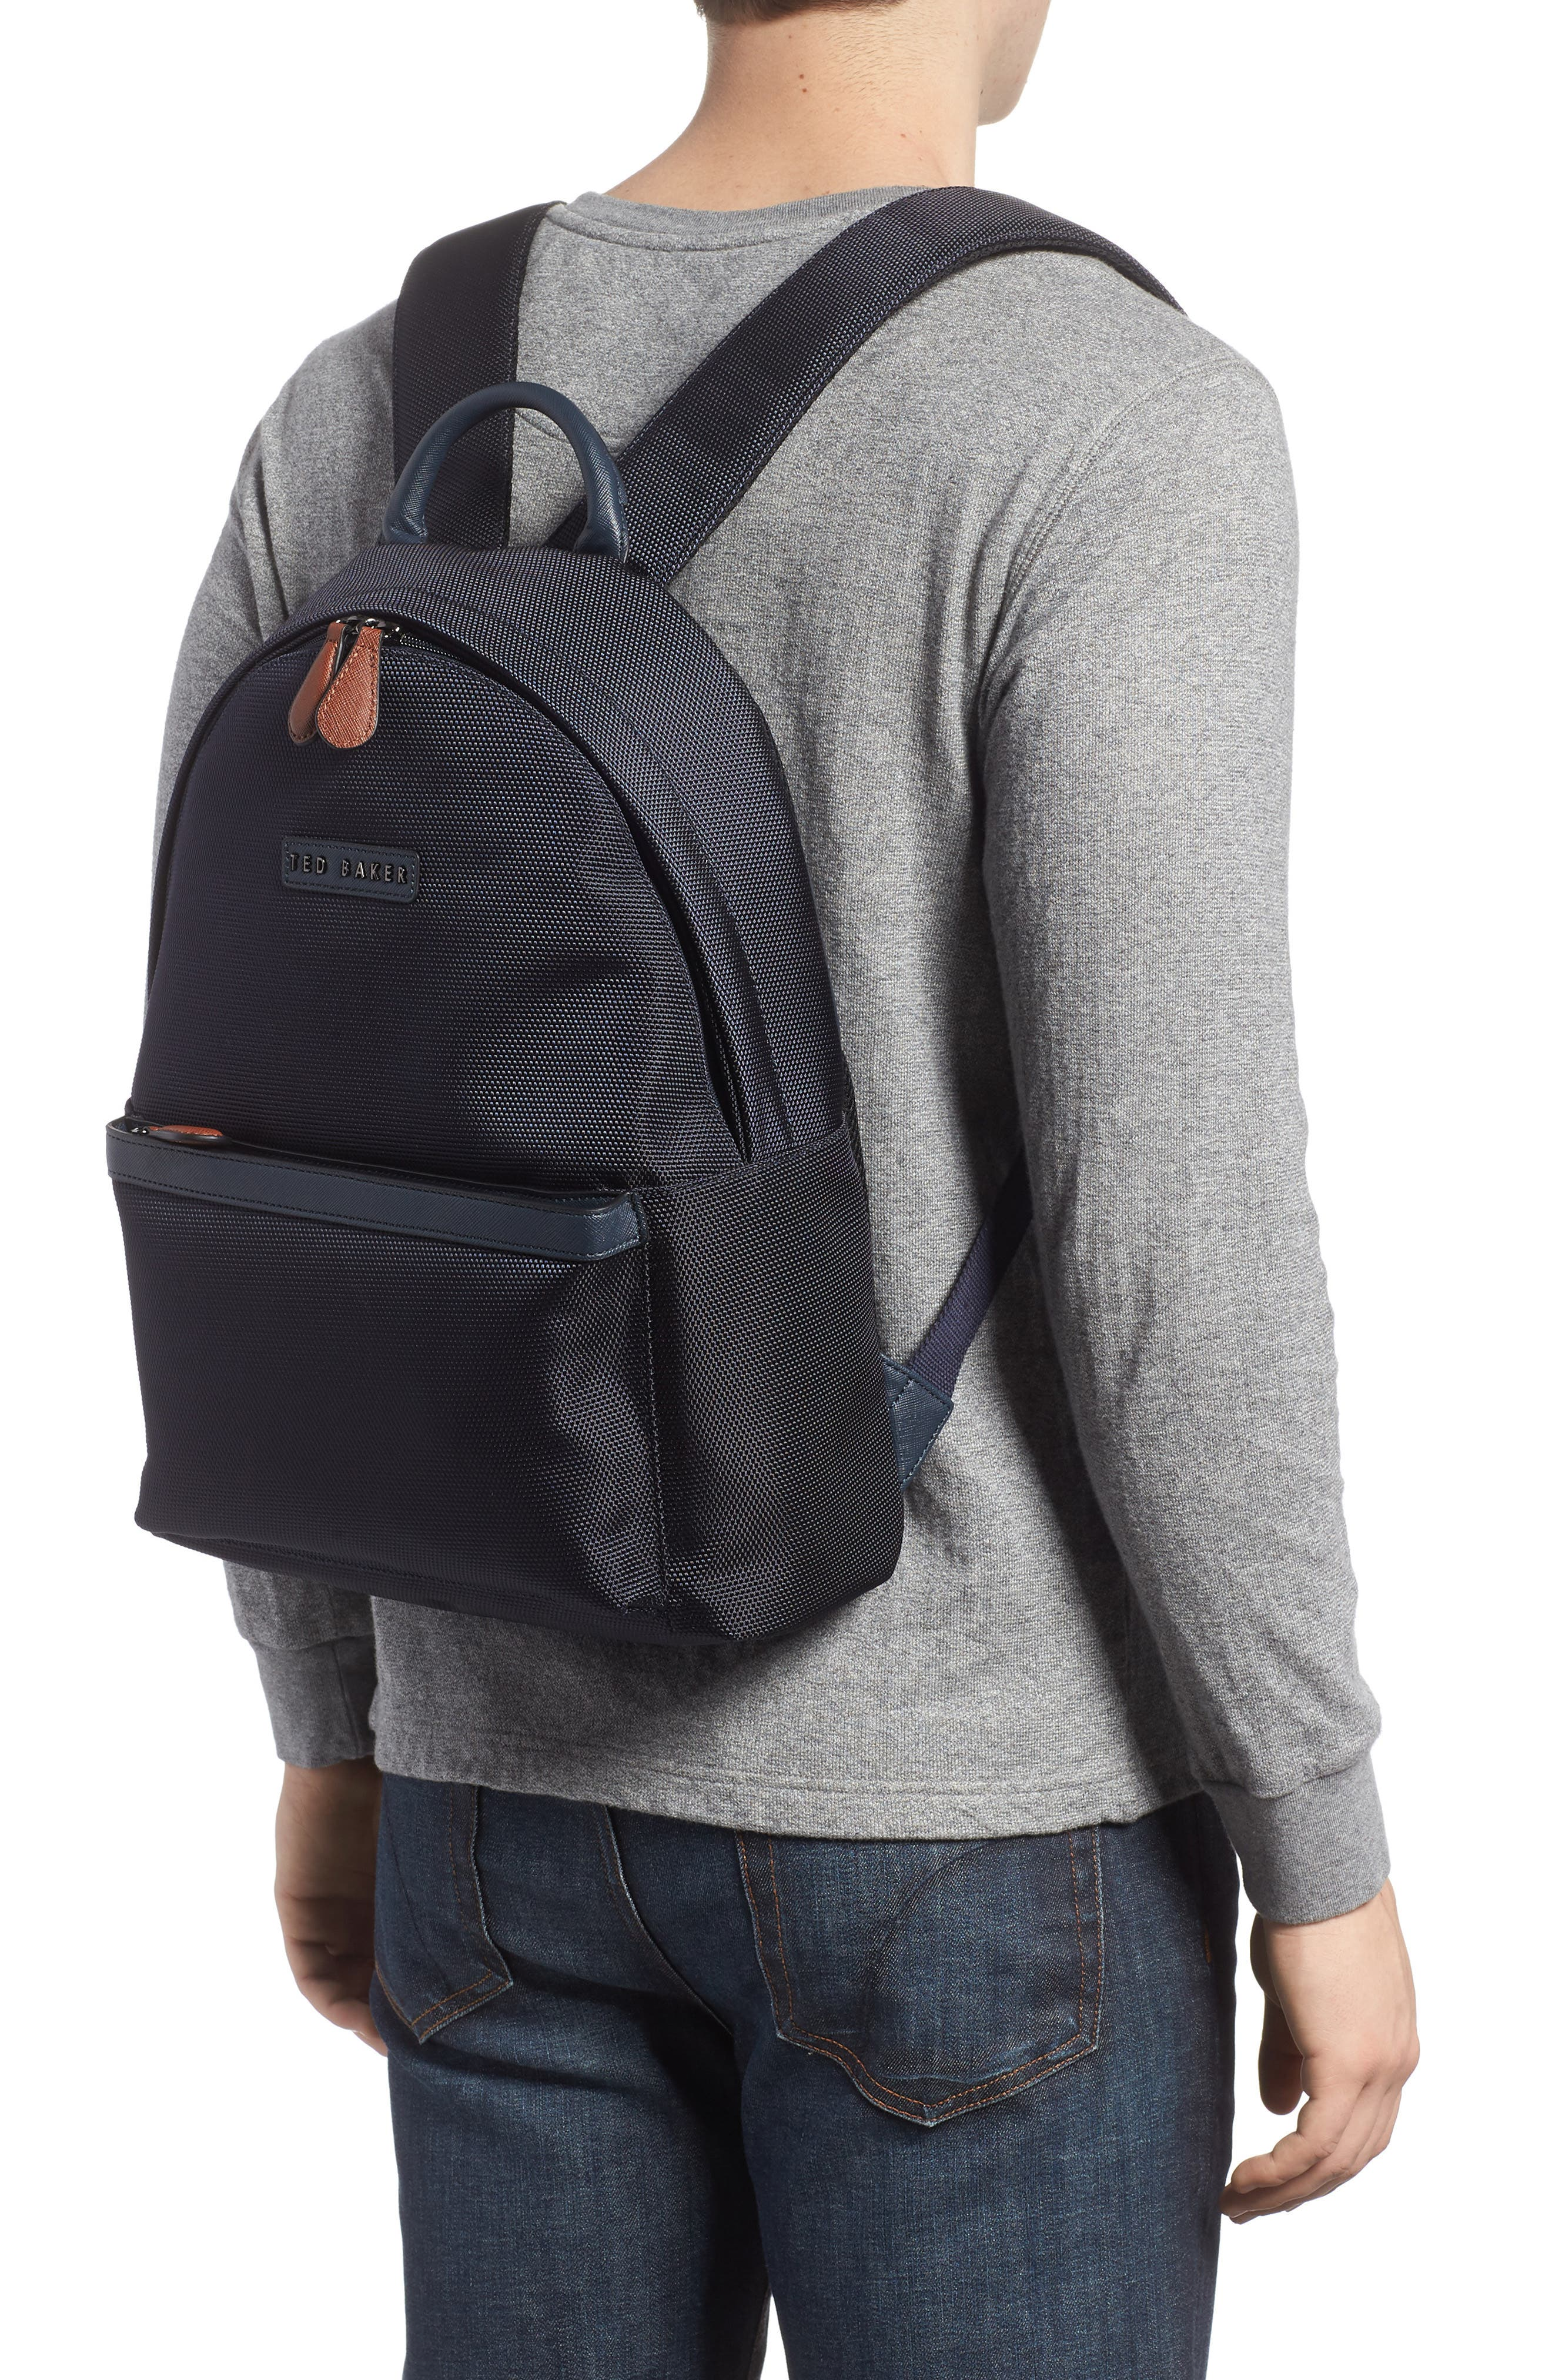 Brakes Backpack,                             Alternate thumbnail 2, color,                             Navy